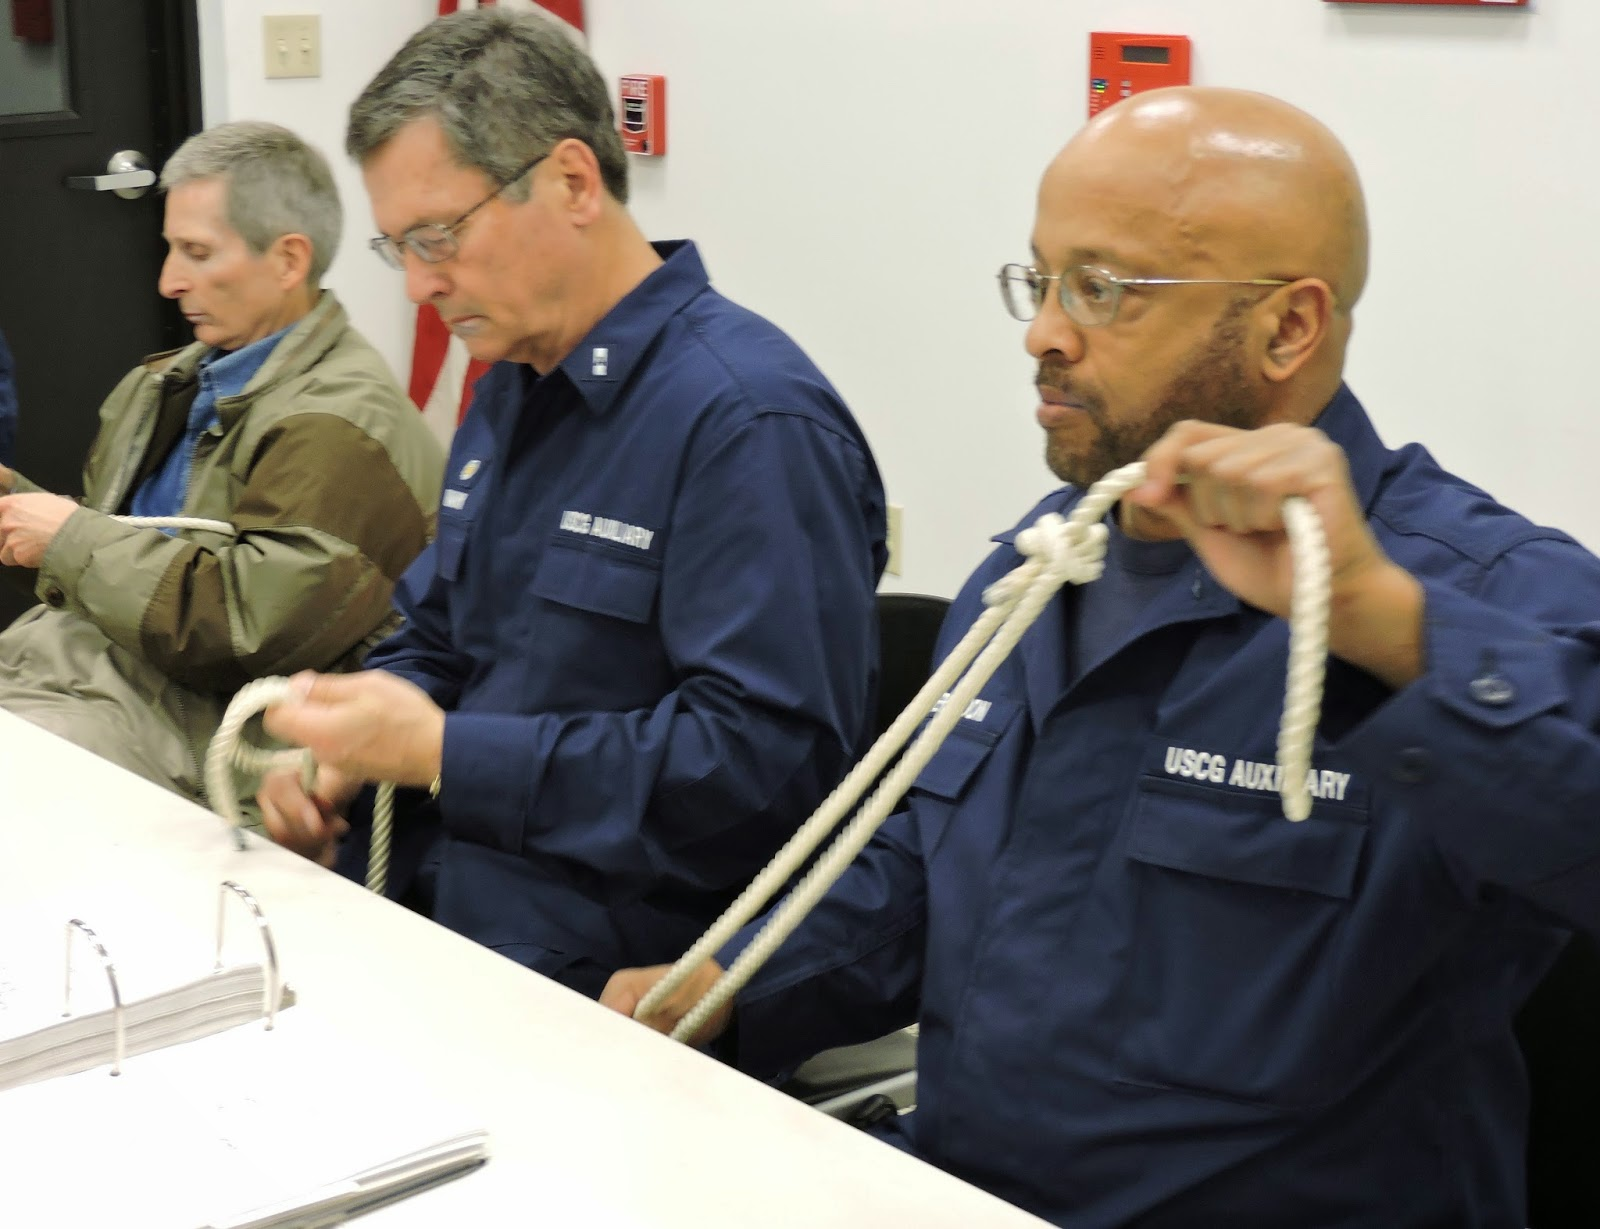 David Witherspoon, right, completes a bowline knot as Bill Iwanyk watches an Instructor demonstrate the knot.